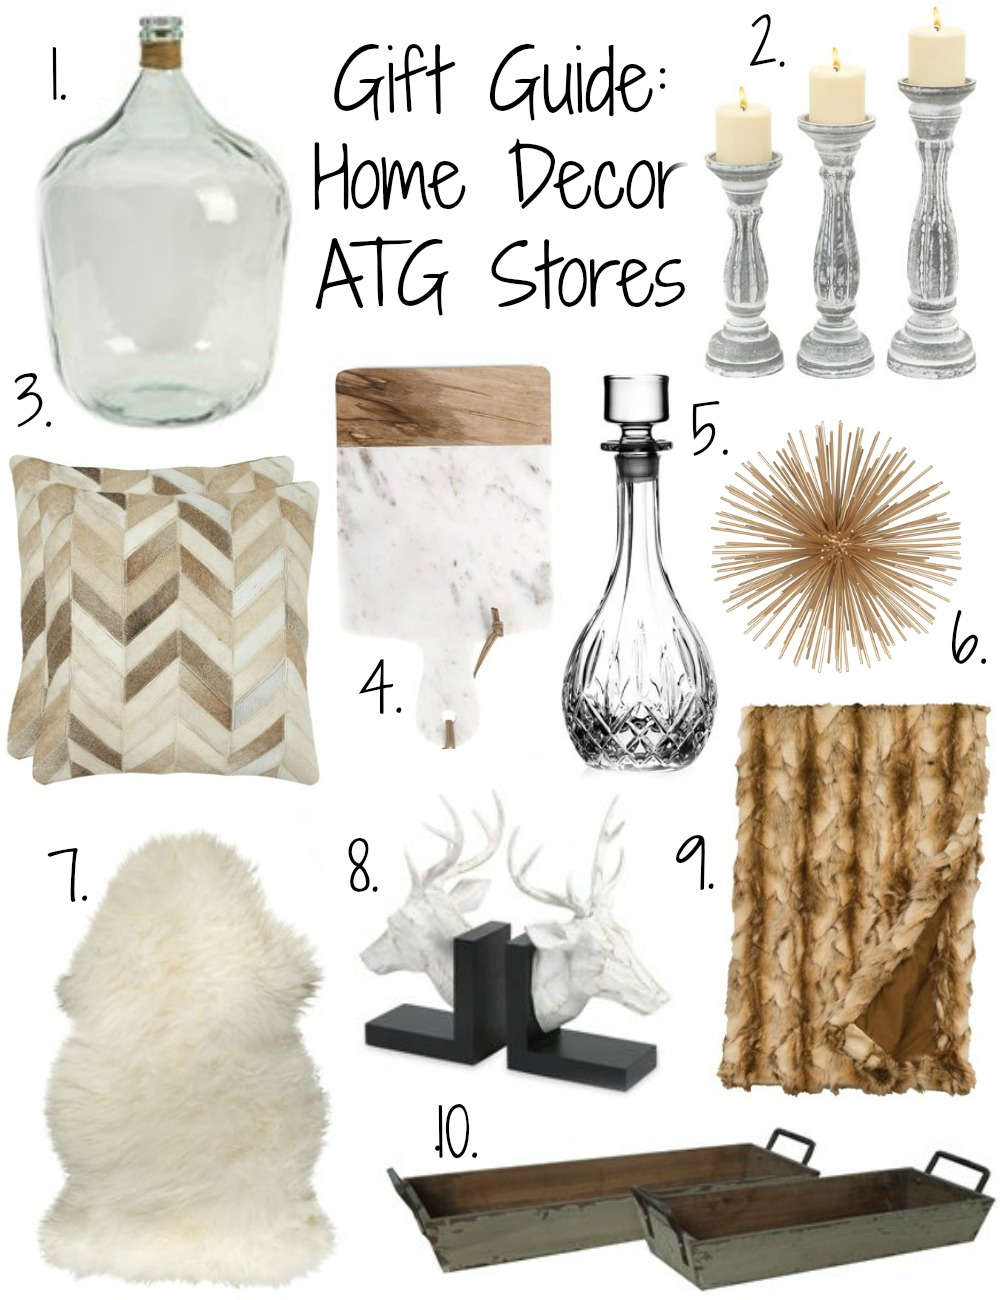 Gift Guide Home Decor with ATG Stores Coffee Beans and